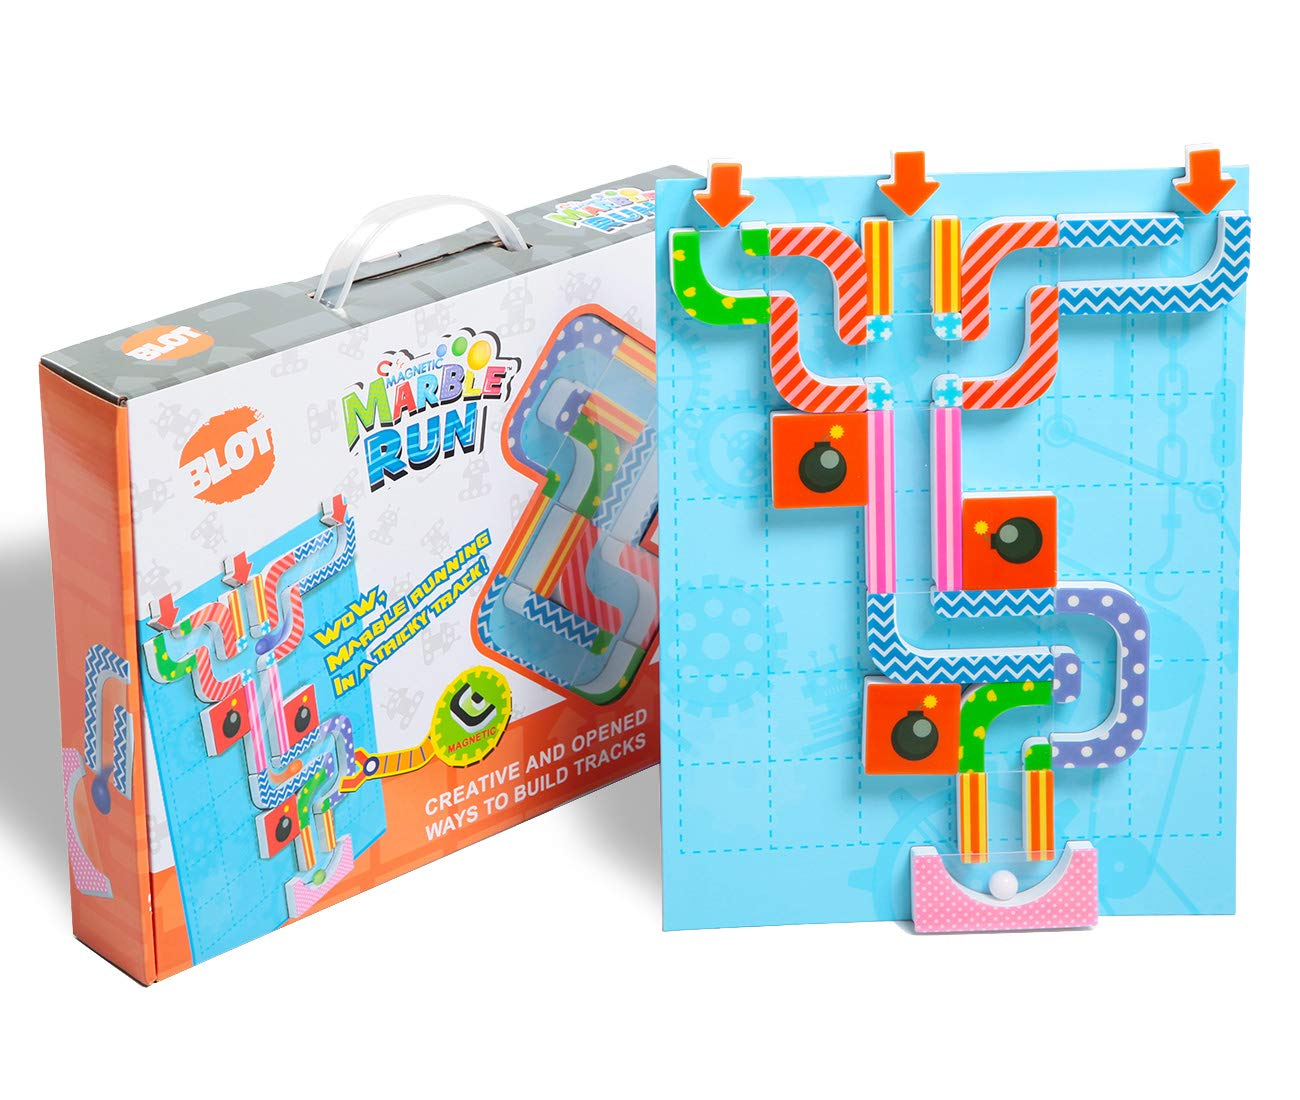 Magnetic Marble Run Set Stem Educational Toys Marble Maze Game Creativity for Boys Girls Kids 6+ Learning Critical Thinking, 34 Pieces Set